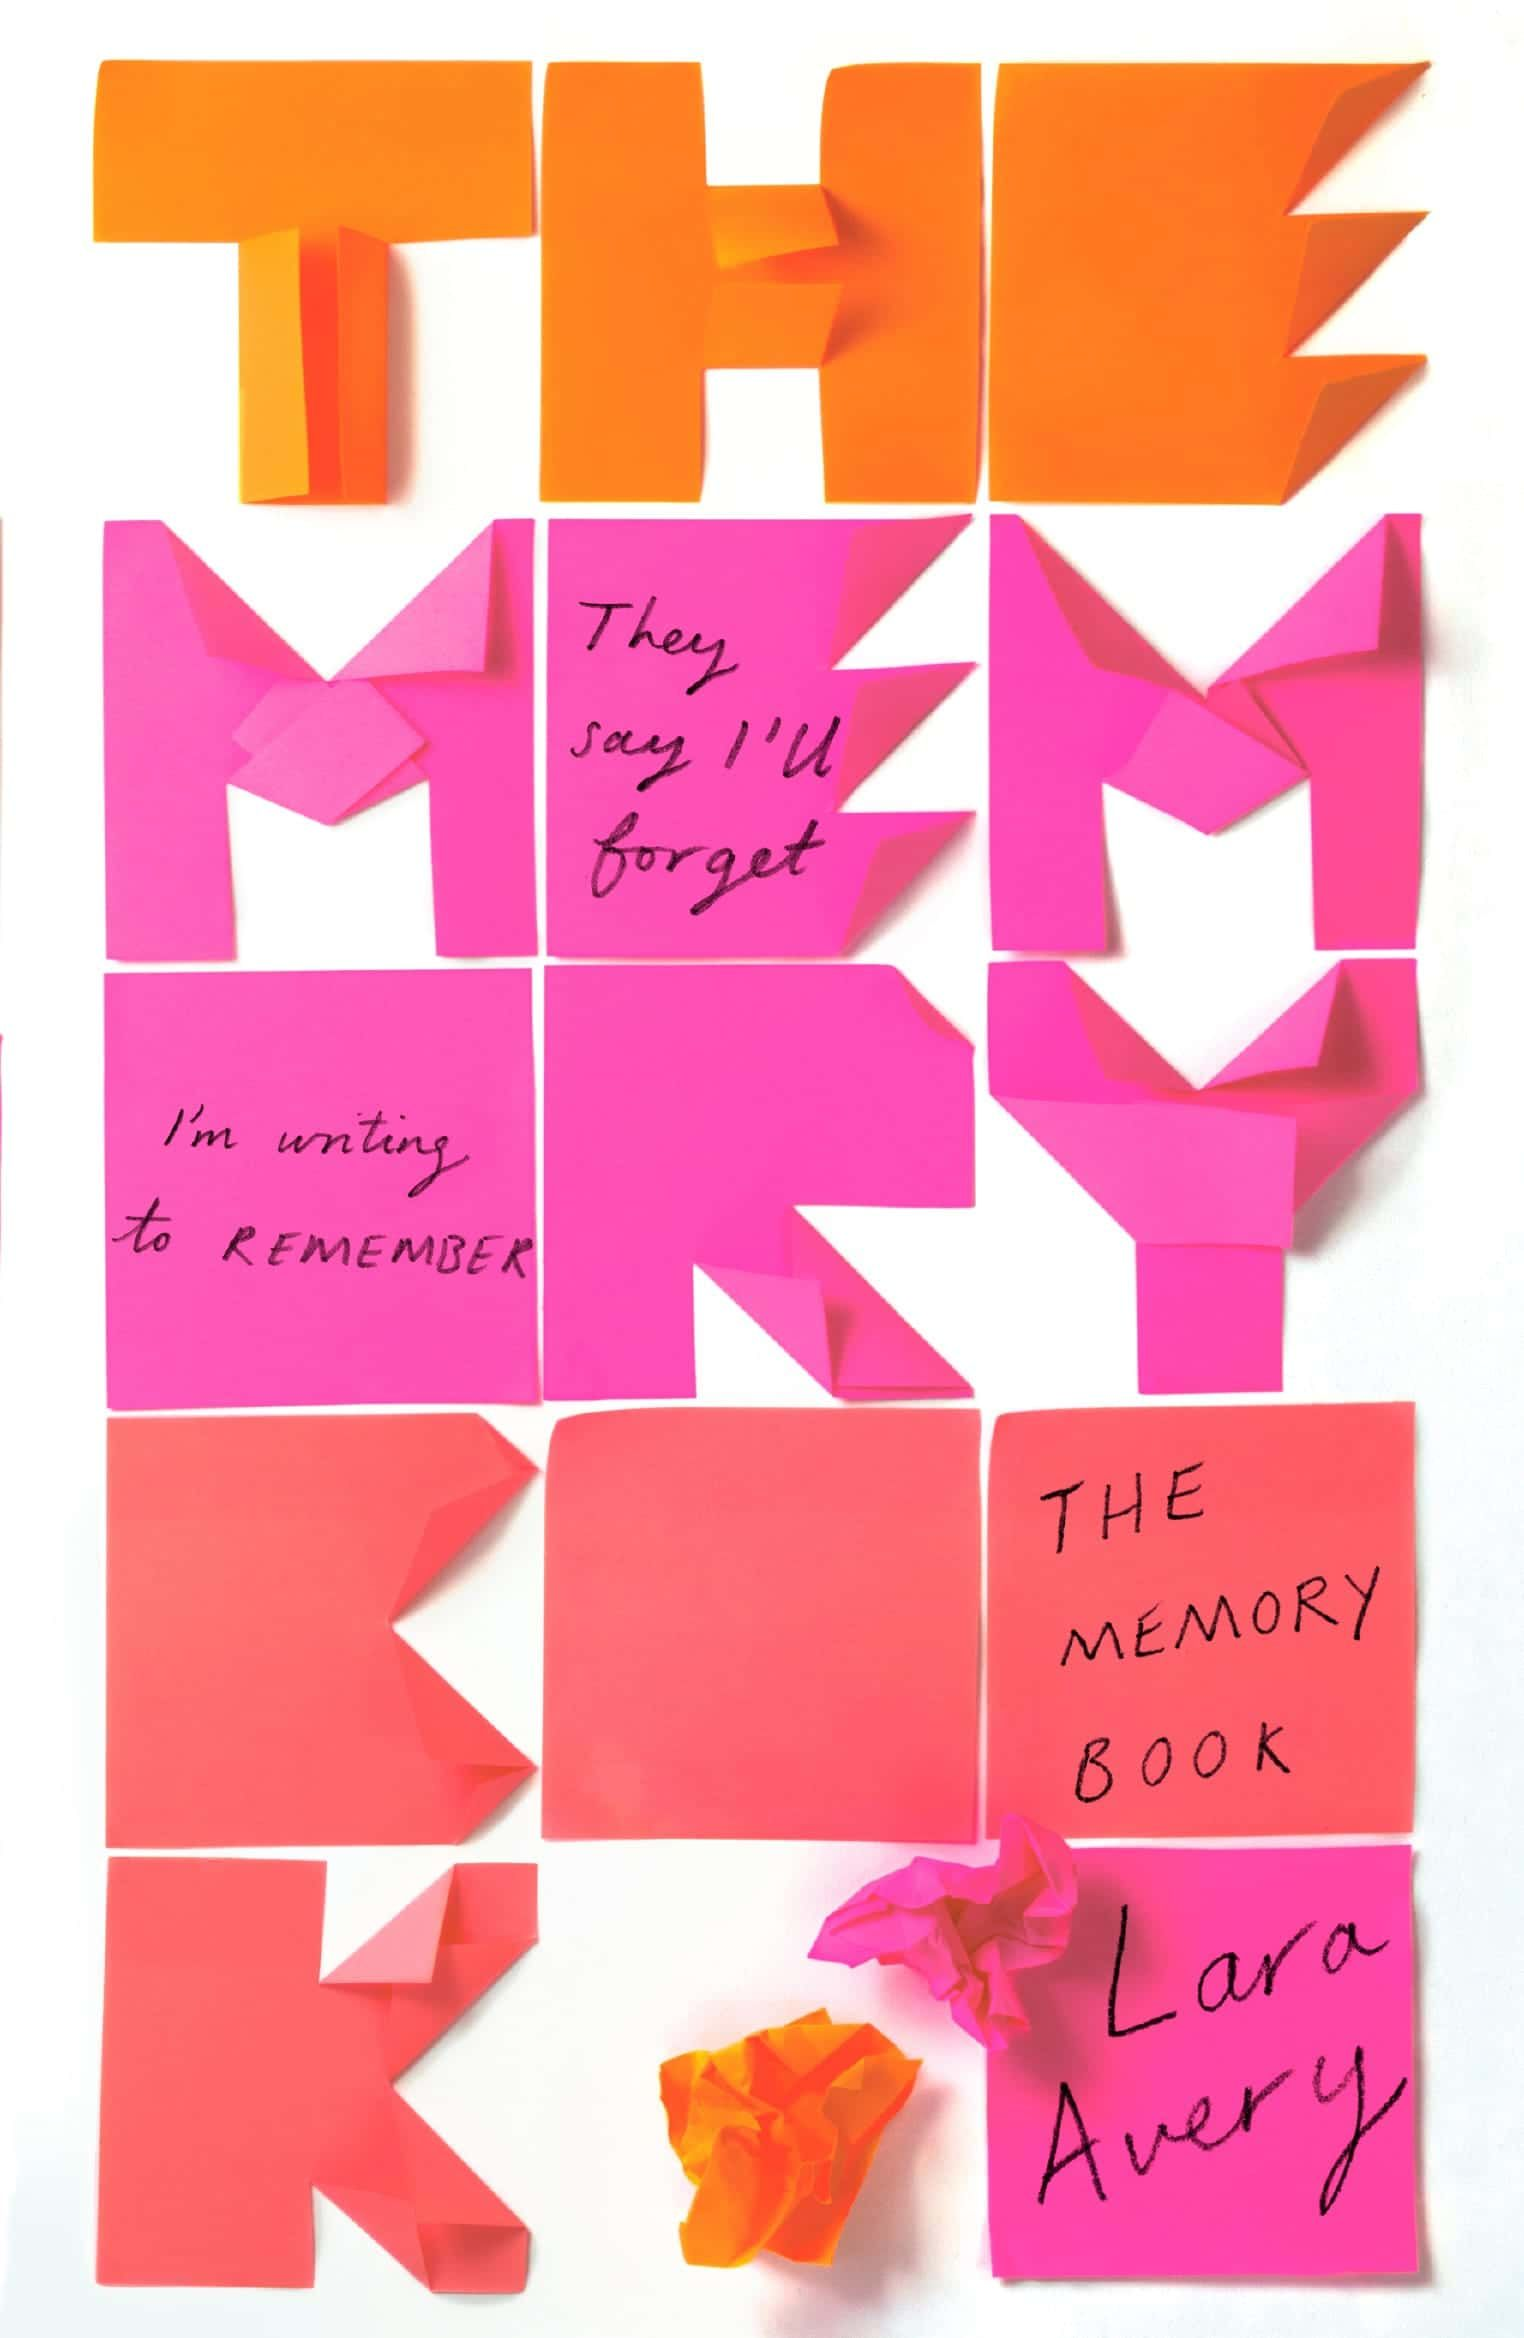 Watercolor book covers - The Memory Book Book Cover Designed By Sinem Erkas Winner Of Abcd Young